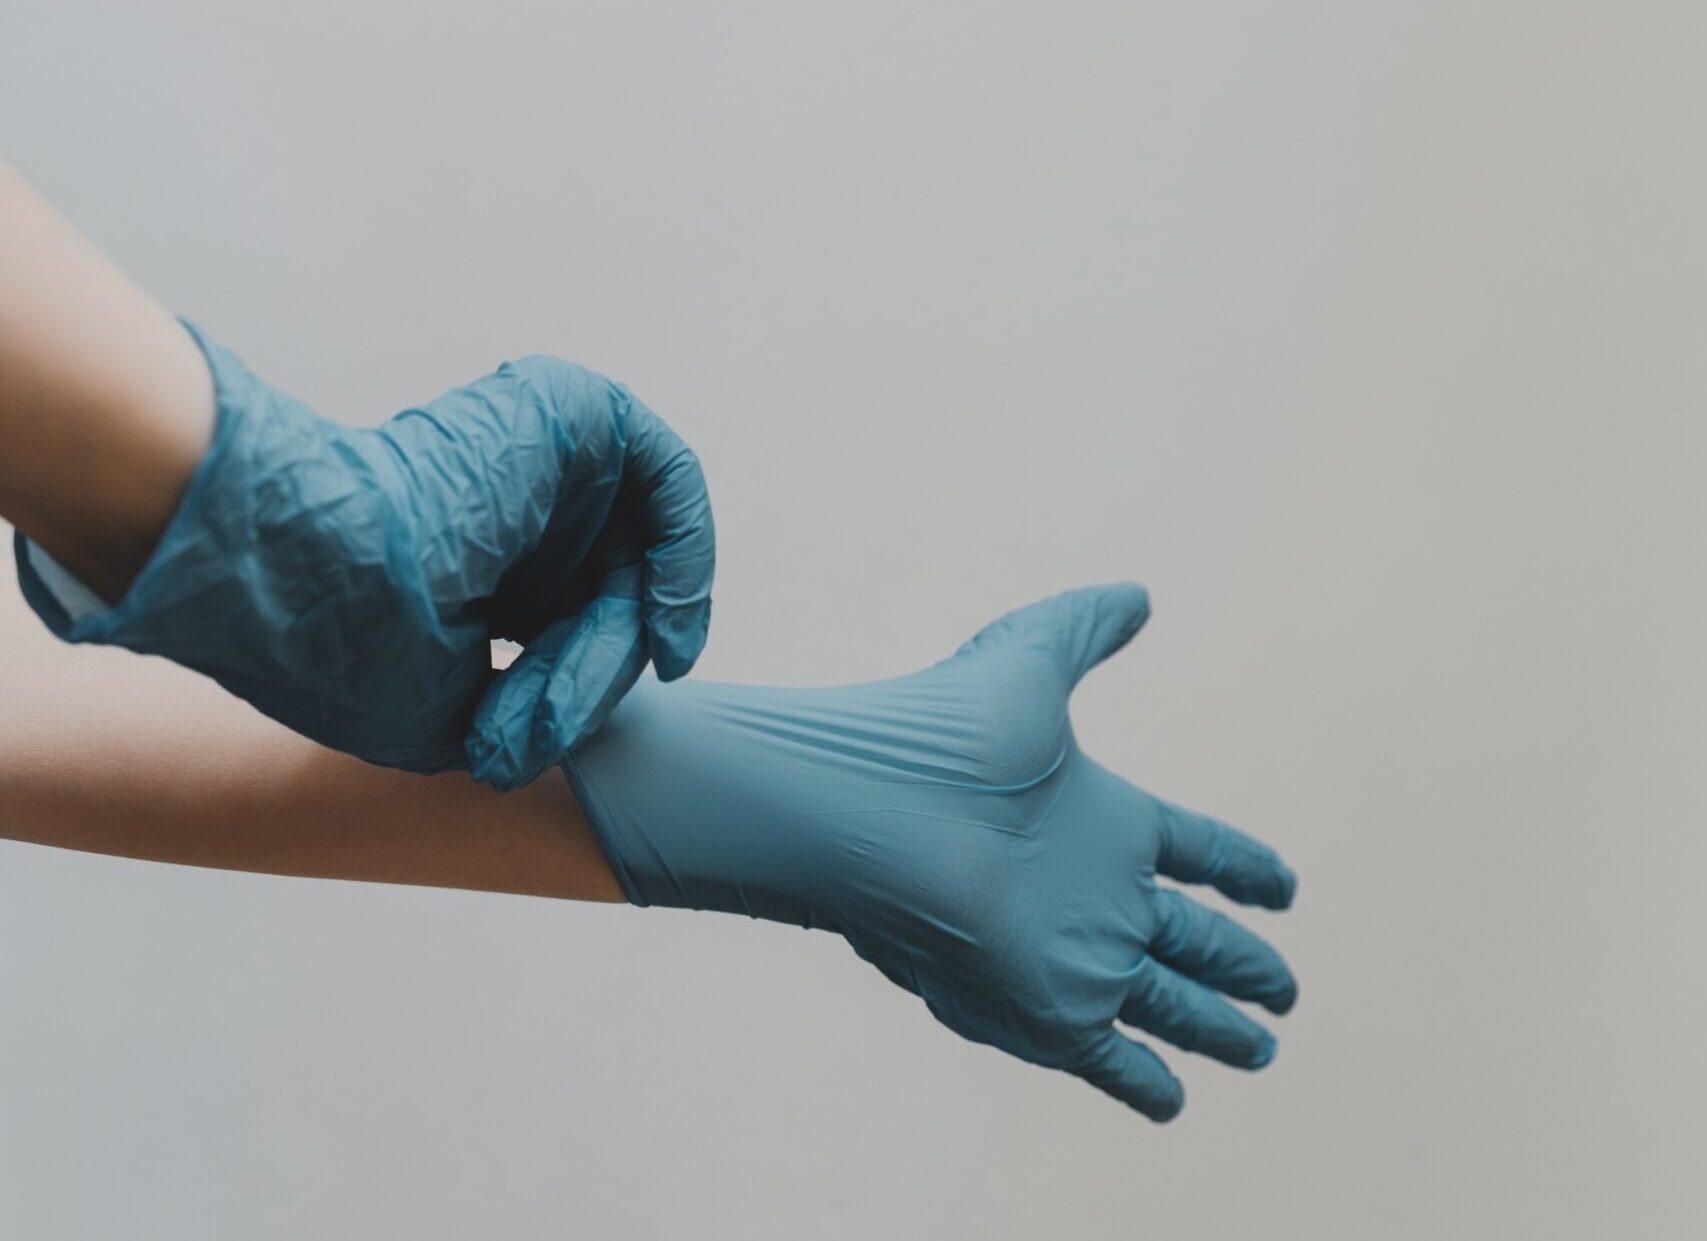 putting on nitrile gloves